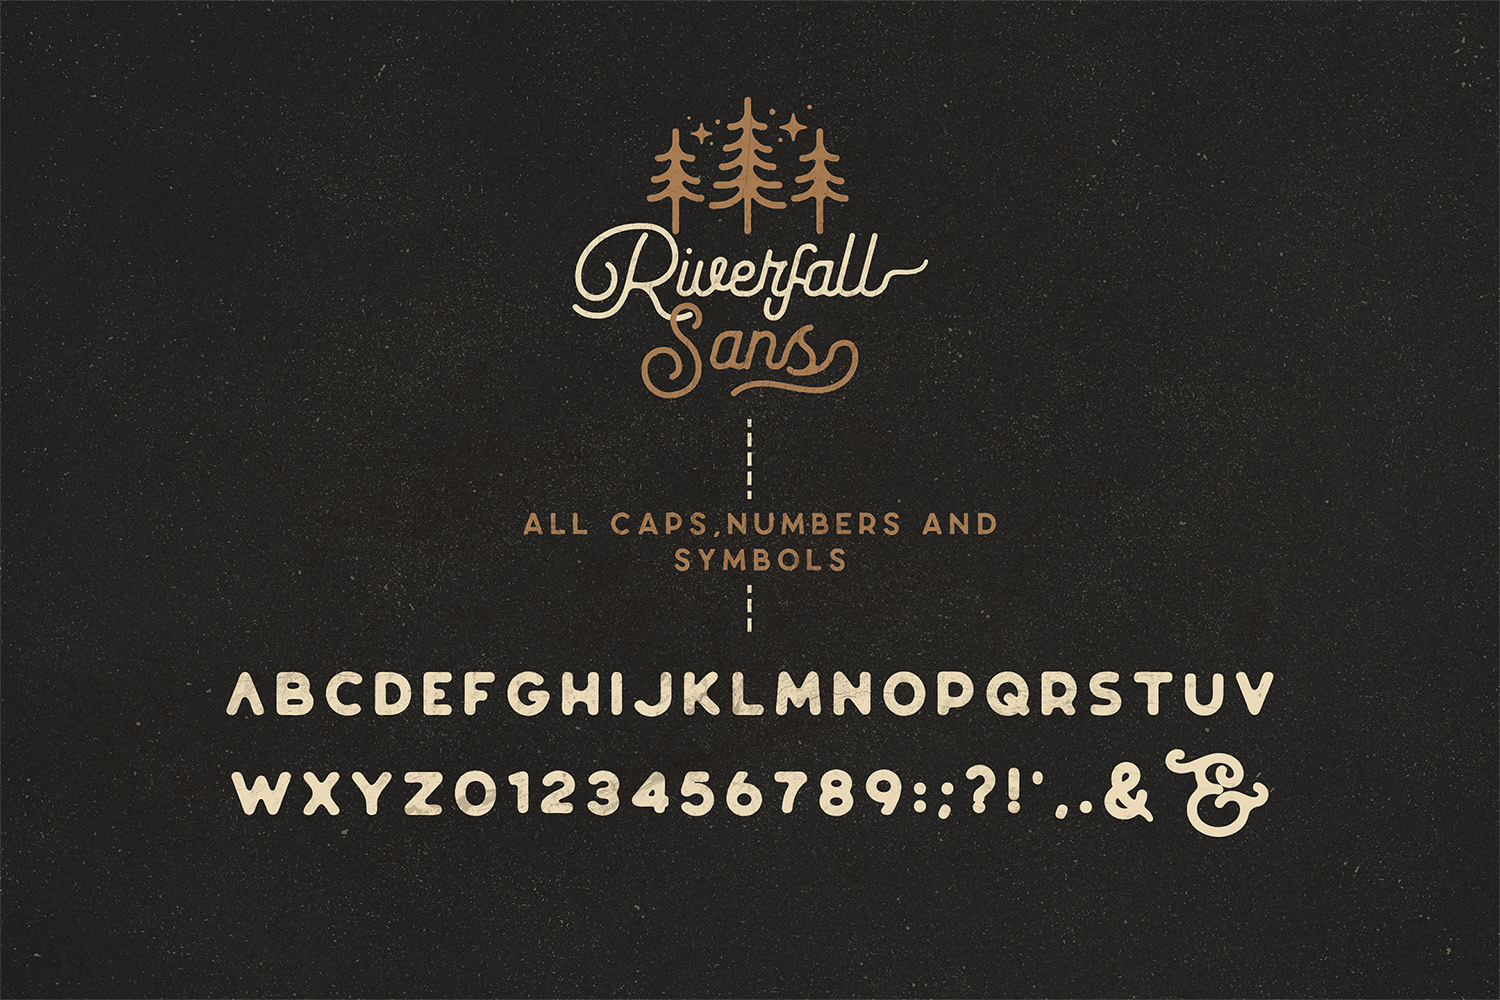 Riverfall Rounded Script and Sans 4 Typeface Ver.1 example image 5